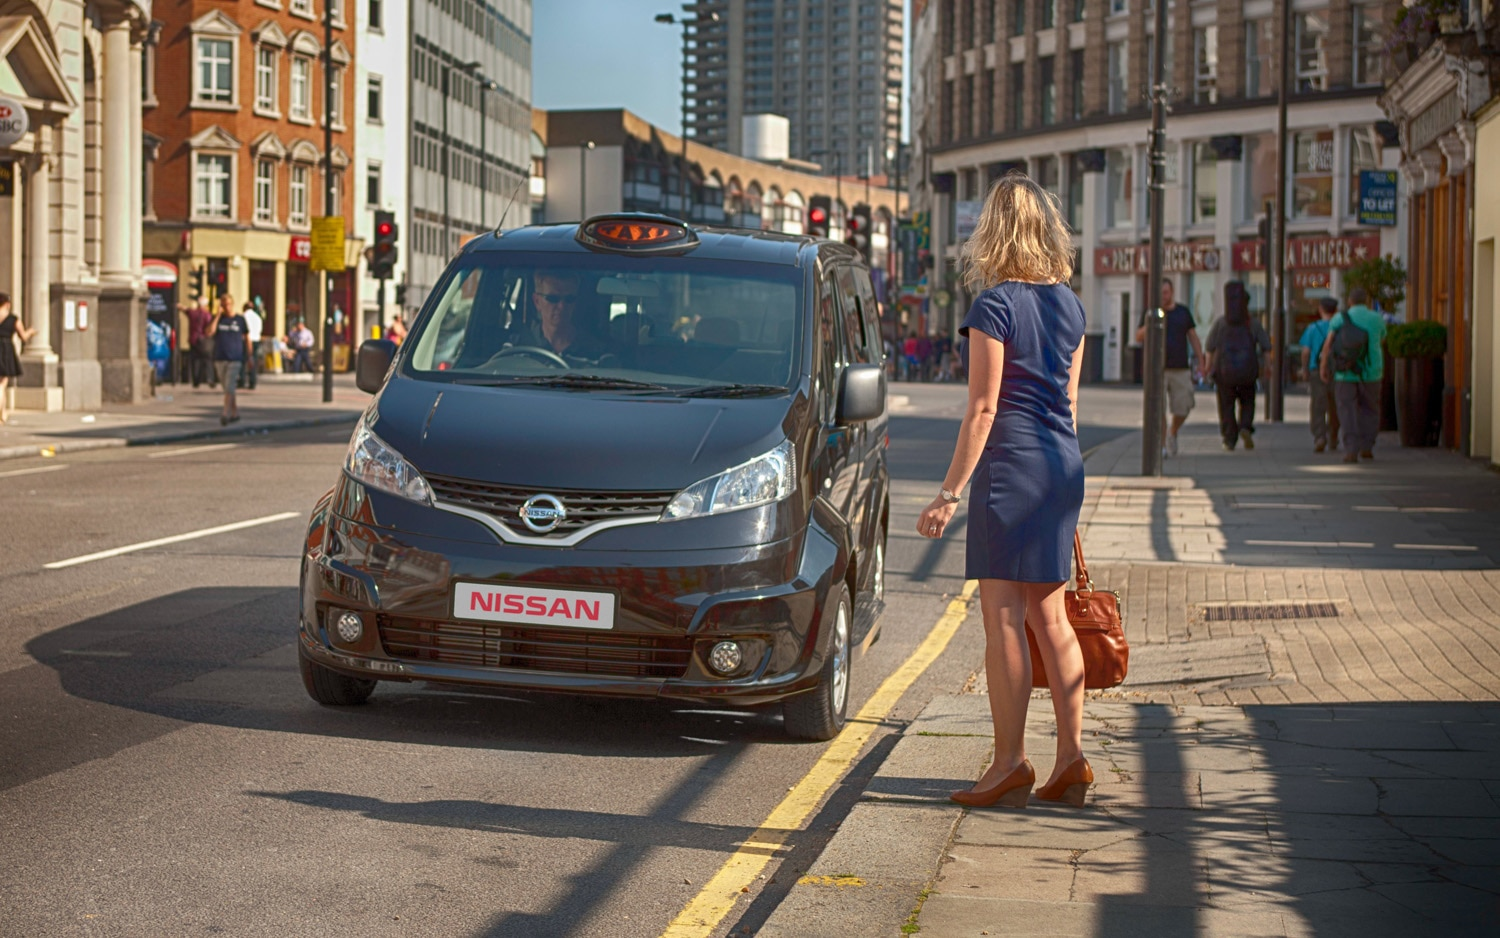 Nissan NV200 London Taxi Front View1